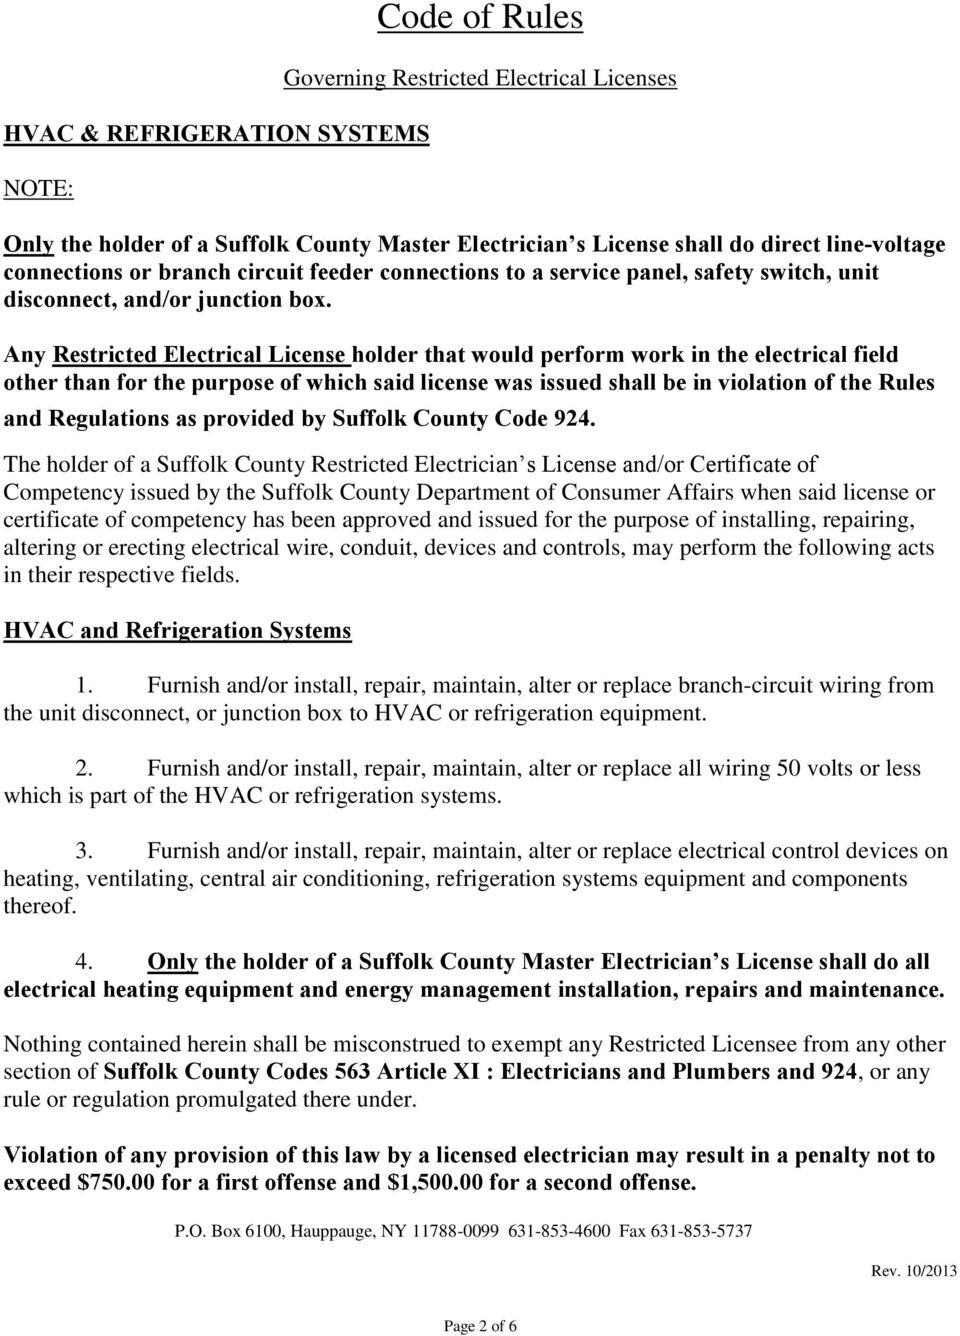 Suffolk County Code Of Rules Governing Restricted Licensed Junction Box Wiring Regulations Furnish And Or Install Repair Maintain Alter Replace All 50